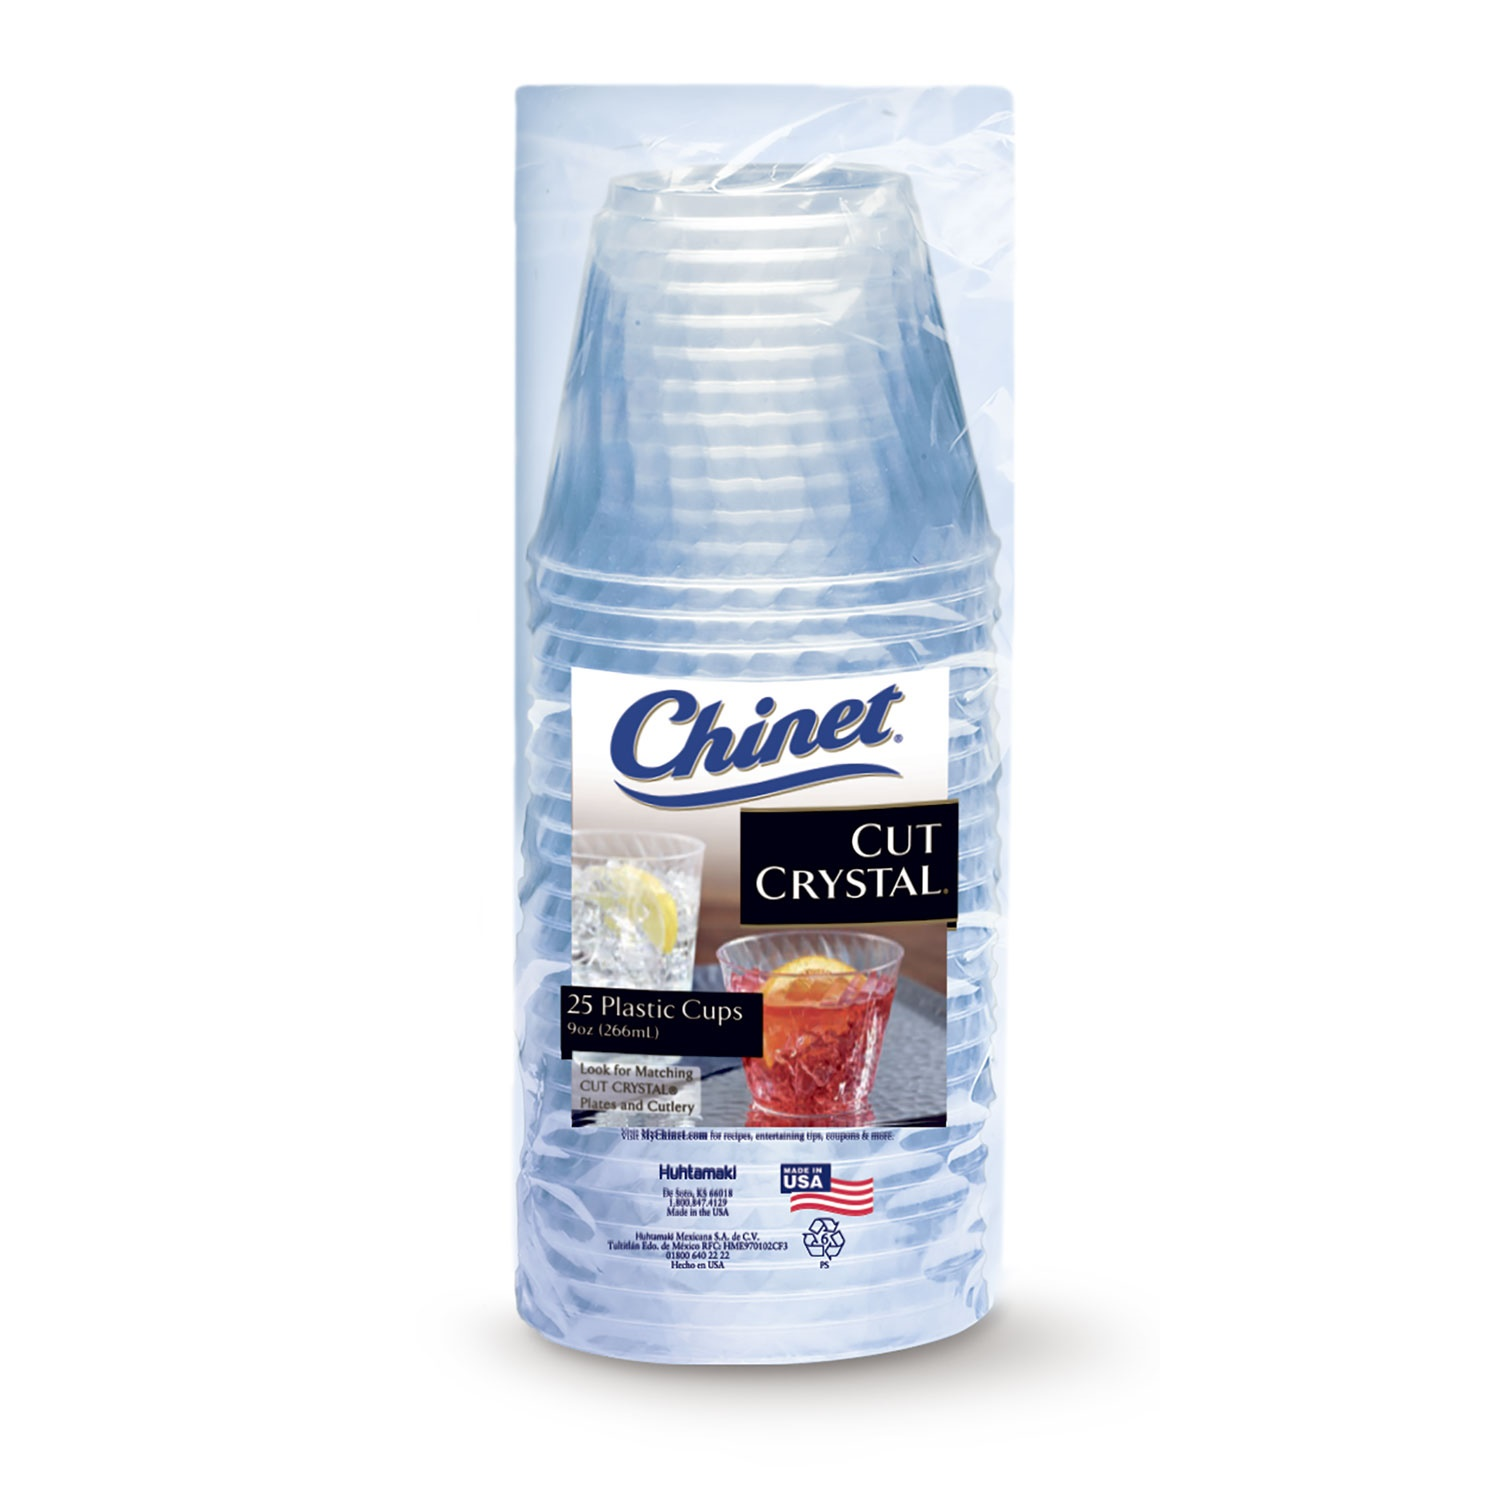 (2 Pack) Chinet Cut Crystal Plastic Cups, 9 Oz, 25 Ct